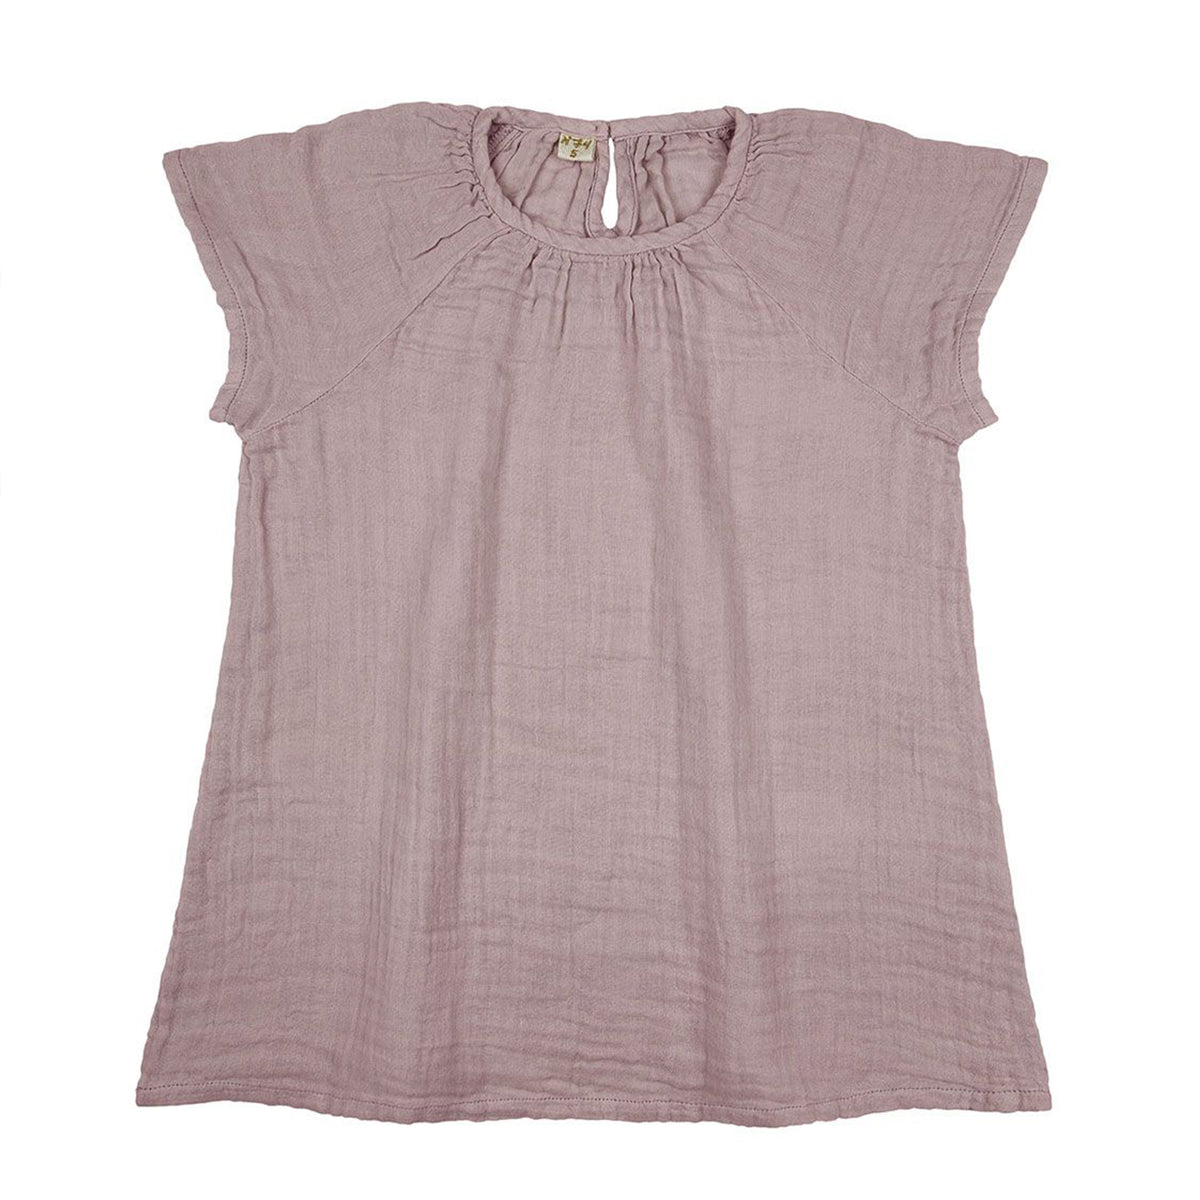 Numero 74 Clara Dress Dusty Pink - Scandi Minimal